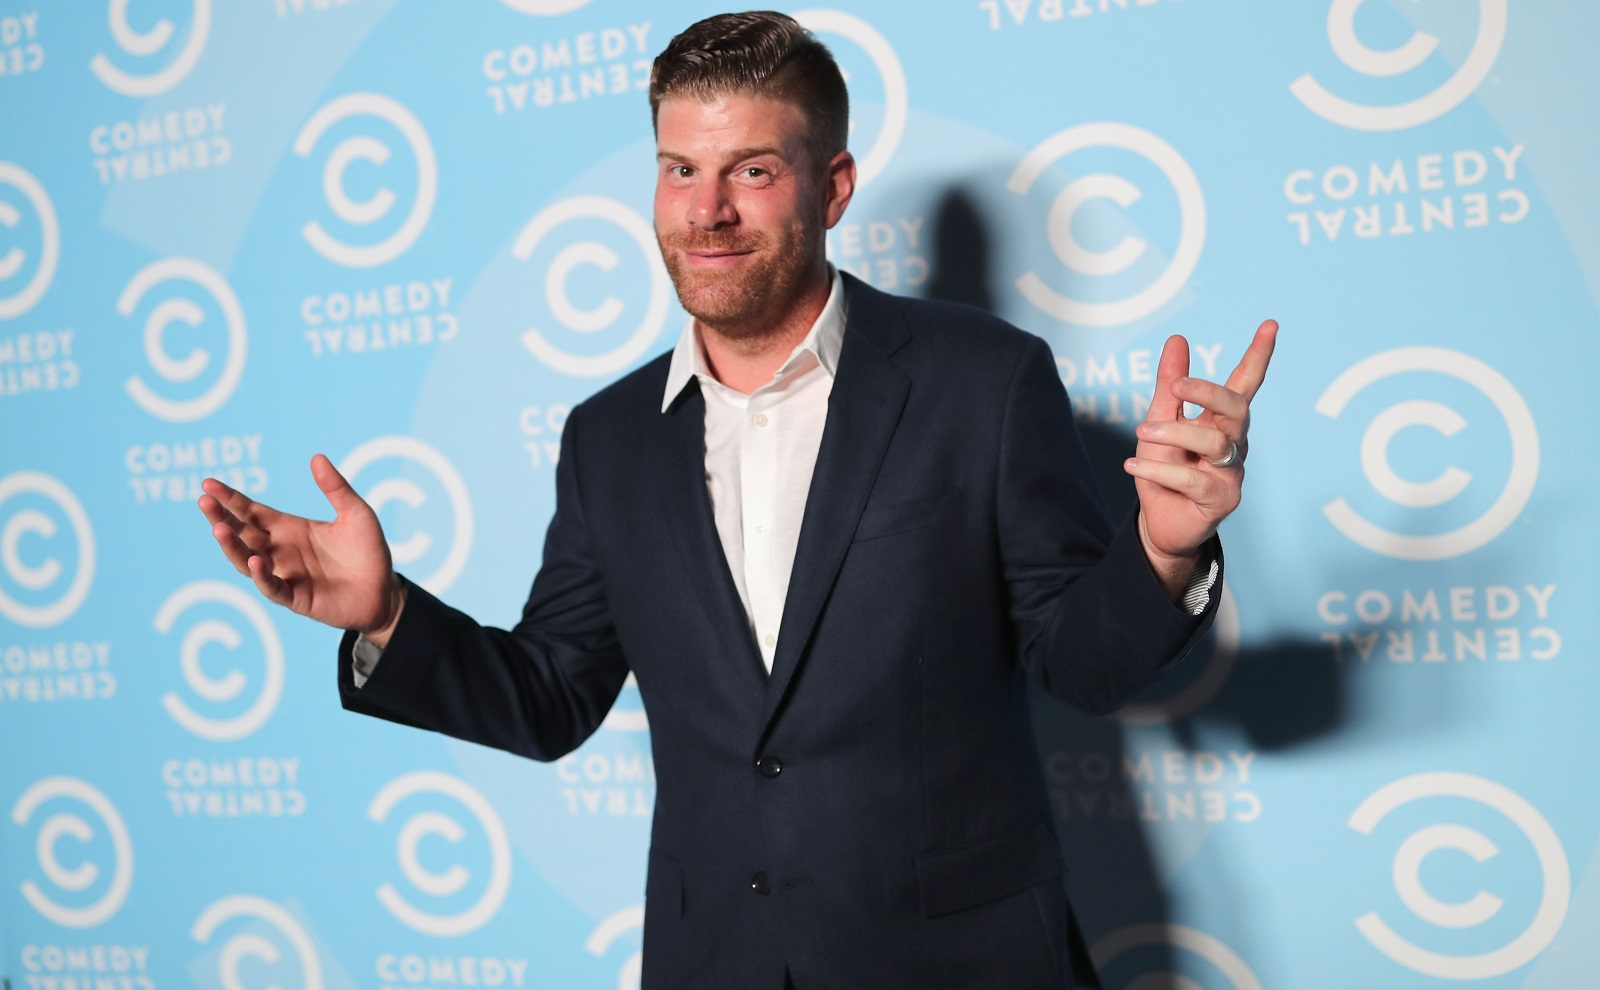 Comedian Steve Rannazzisi, who stars in 'The League,' stops by Helium Comedy Club on Thursday. (Getty Images)